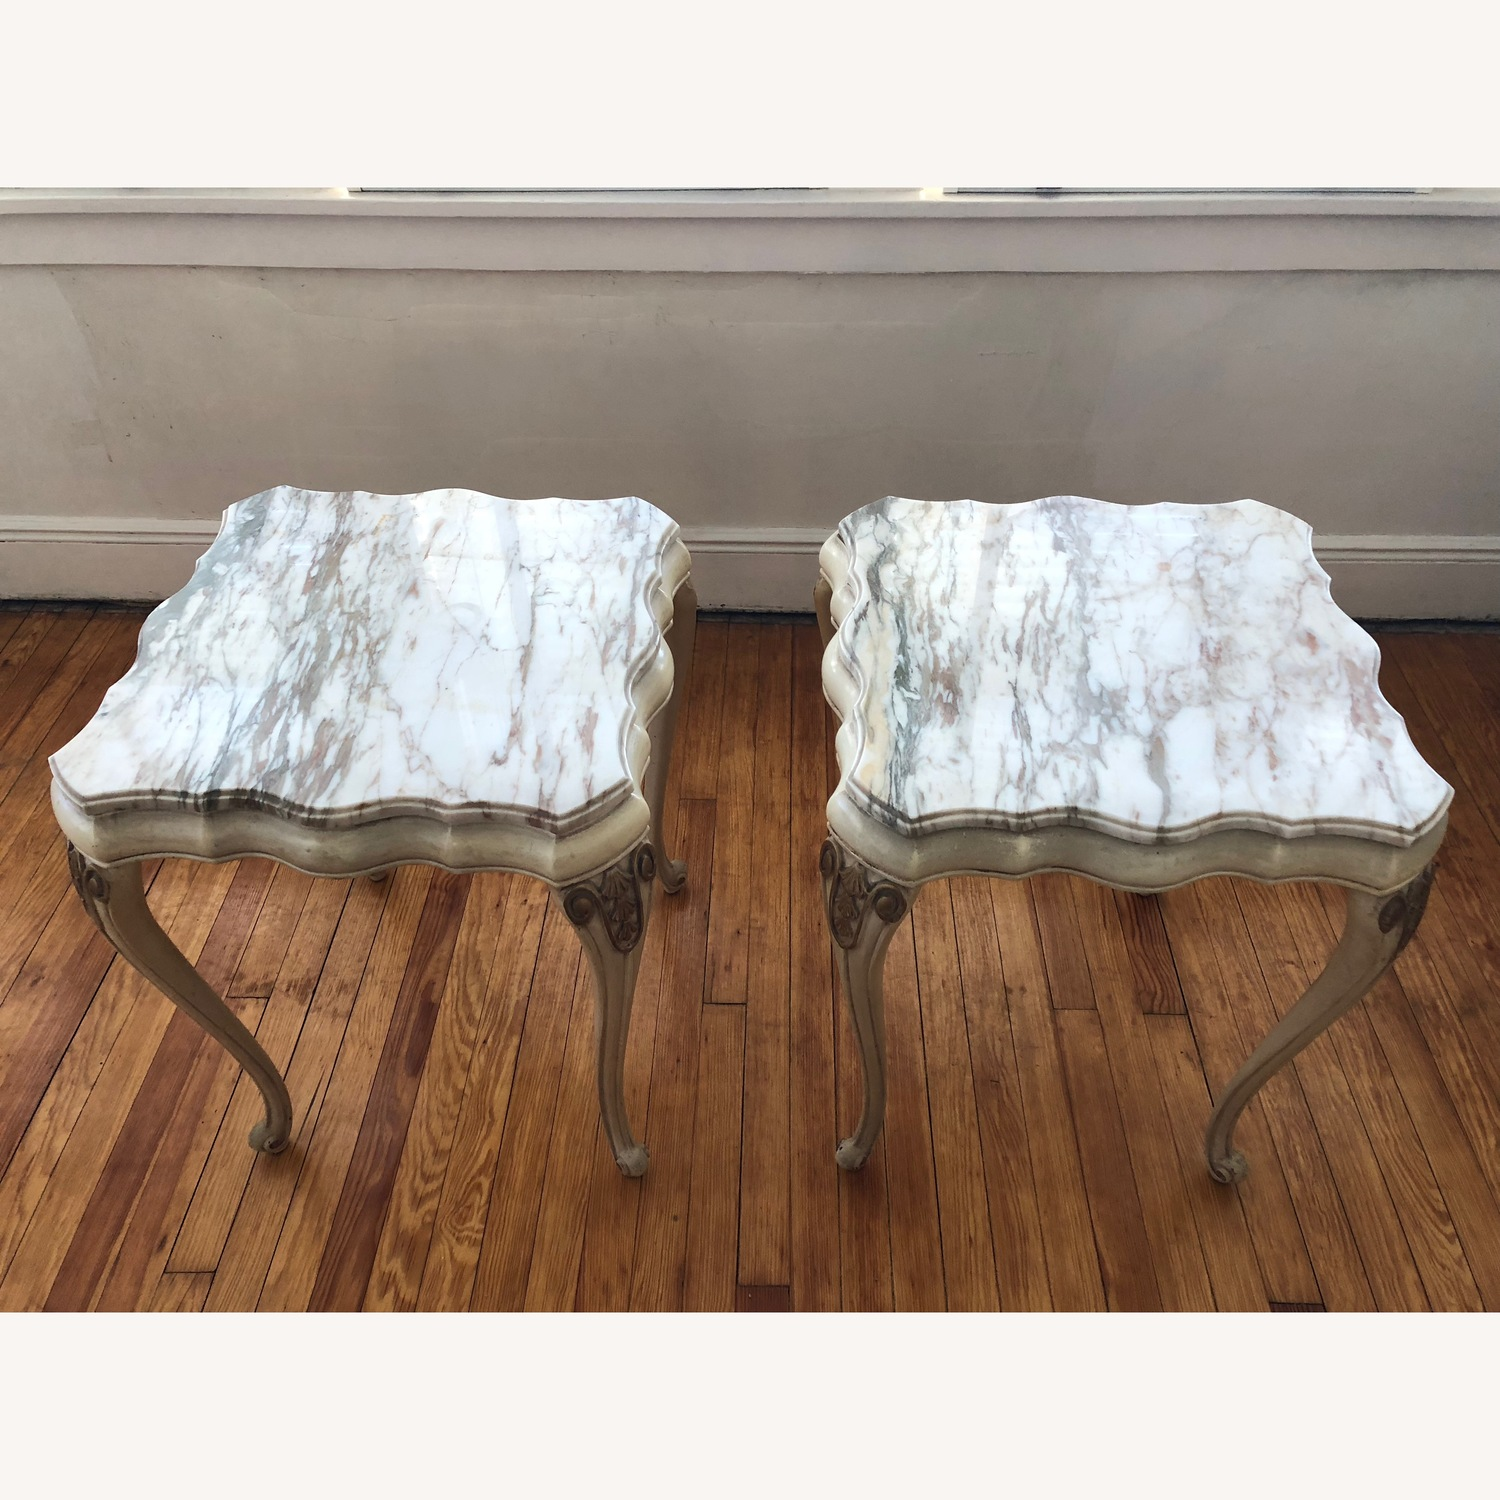 Italian 5 Piece Marble Top Tables - image-9